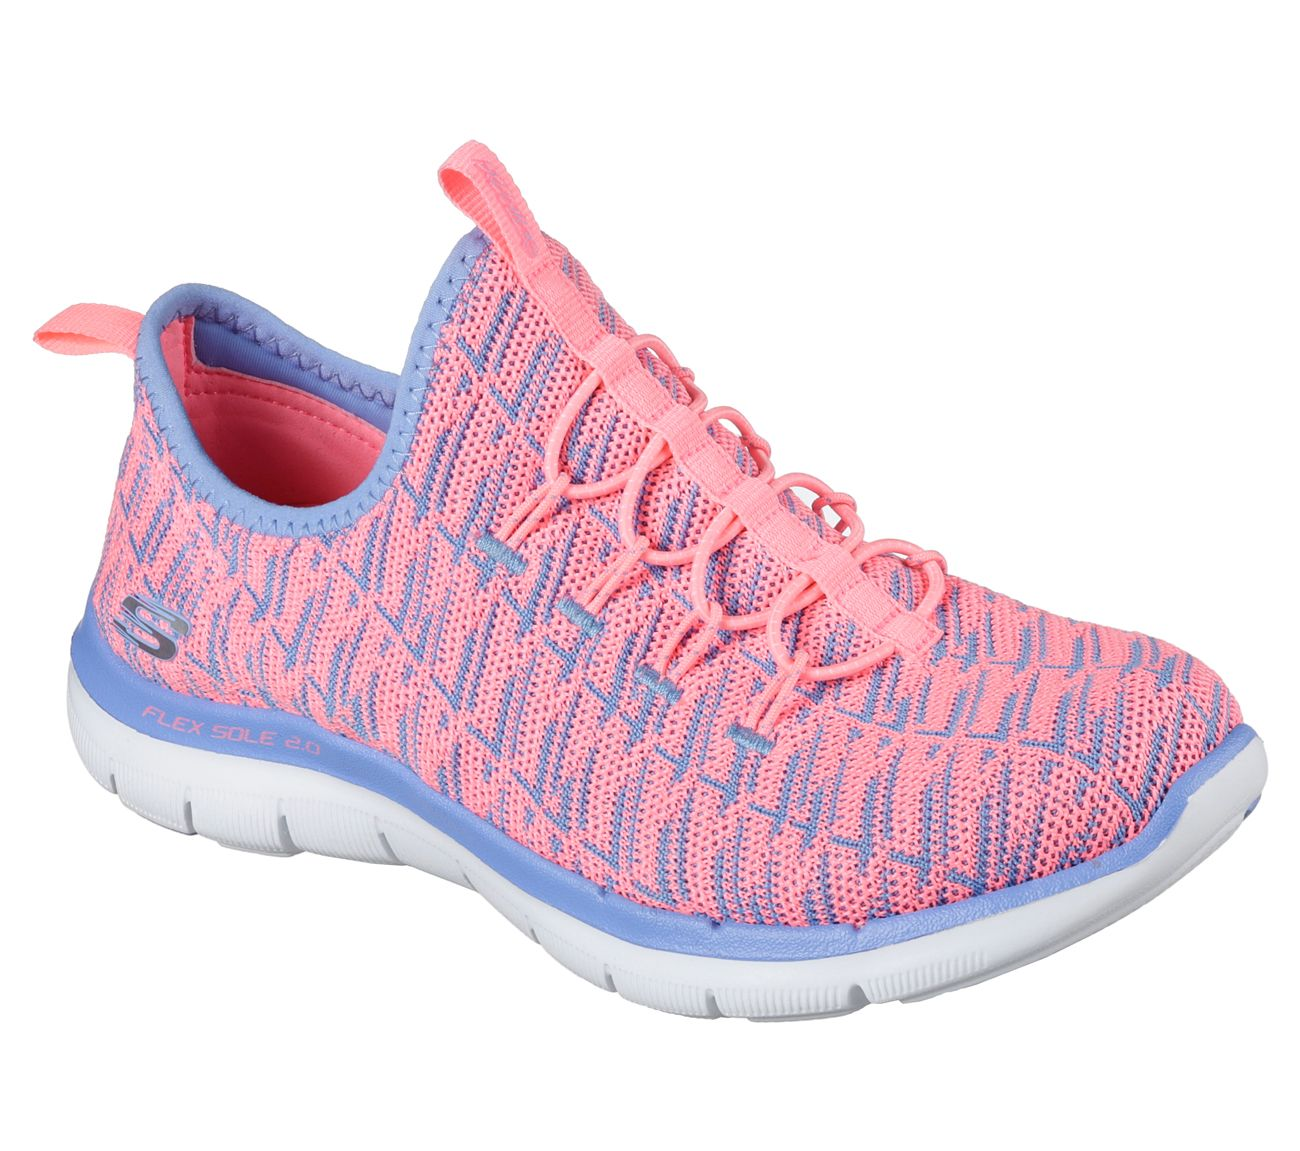 Amazing socklike comfort and sporty style are yours with the SKECHERS Flex  Appeal 2.0 - Insights